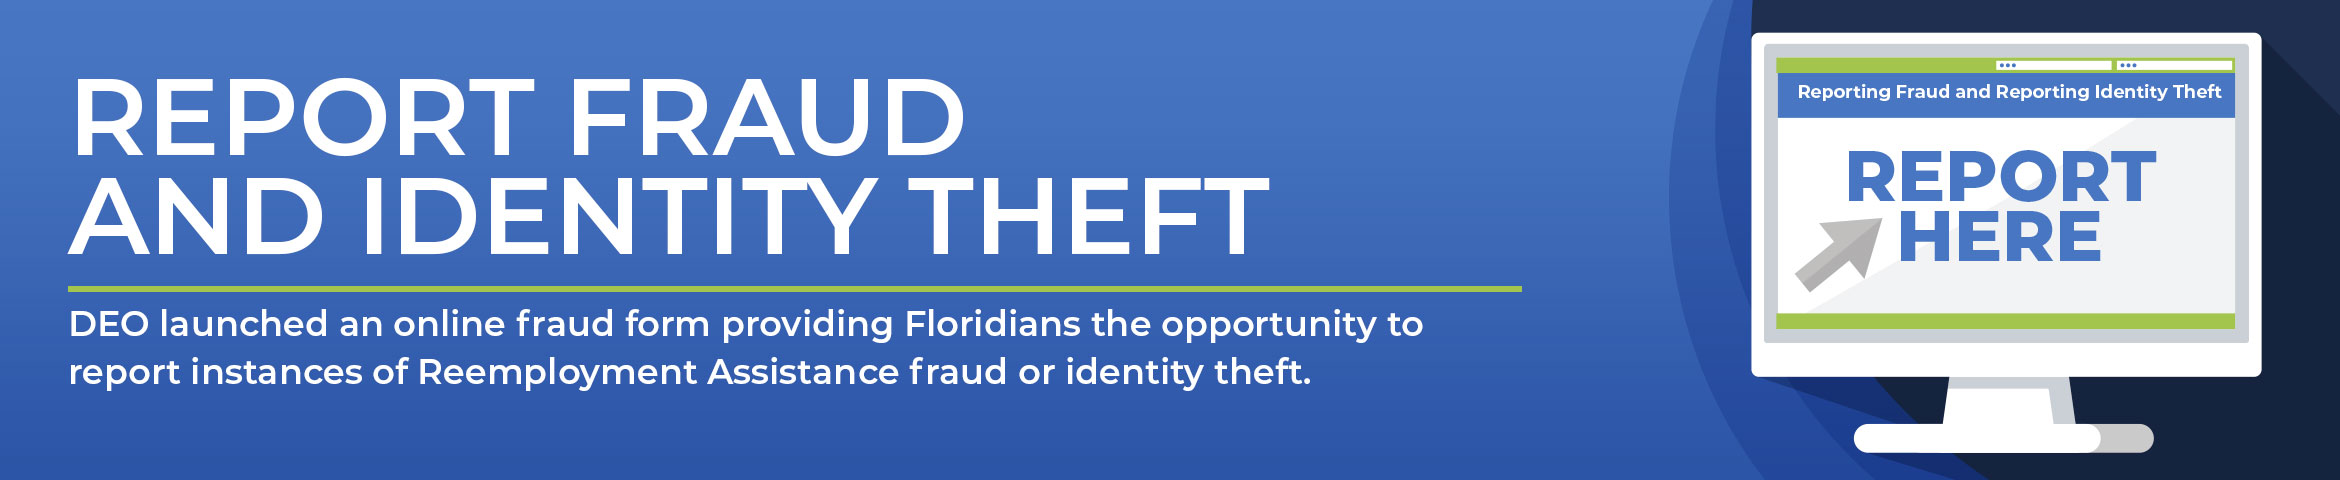 Report Fraud and Identity Theft